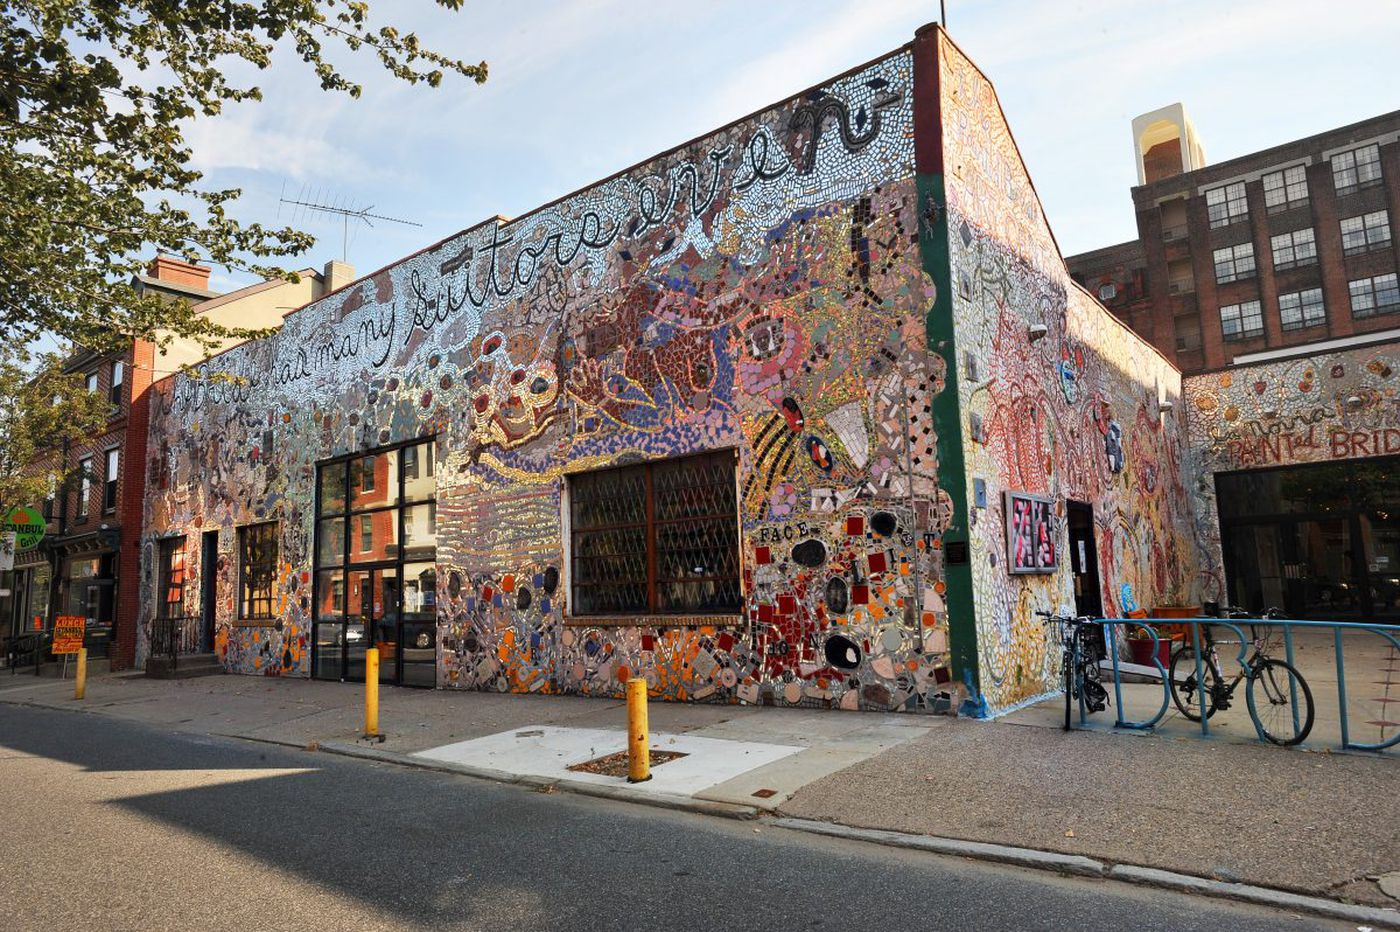 Painted Bride is selling its building and will focus totally on projects